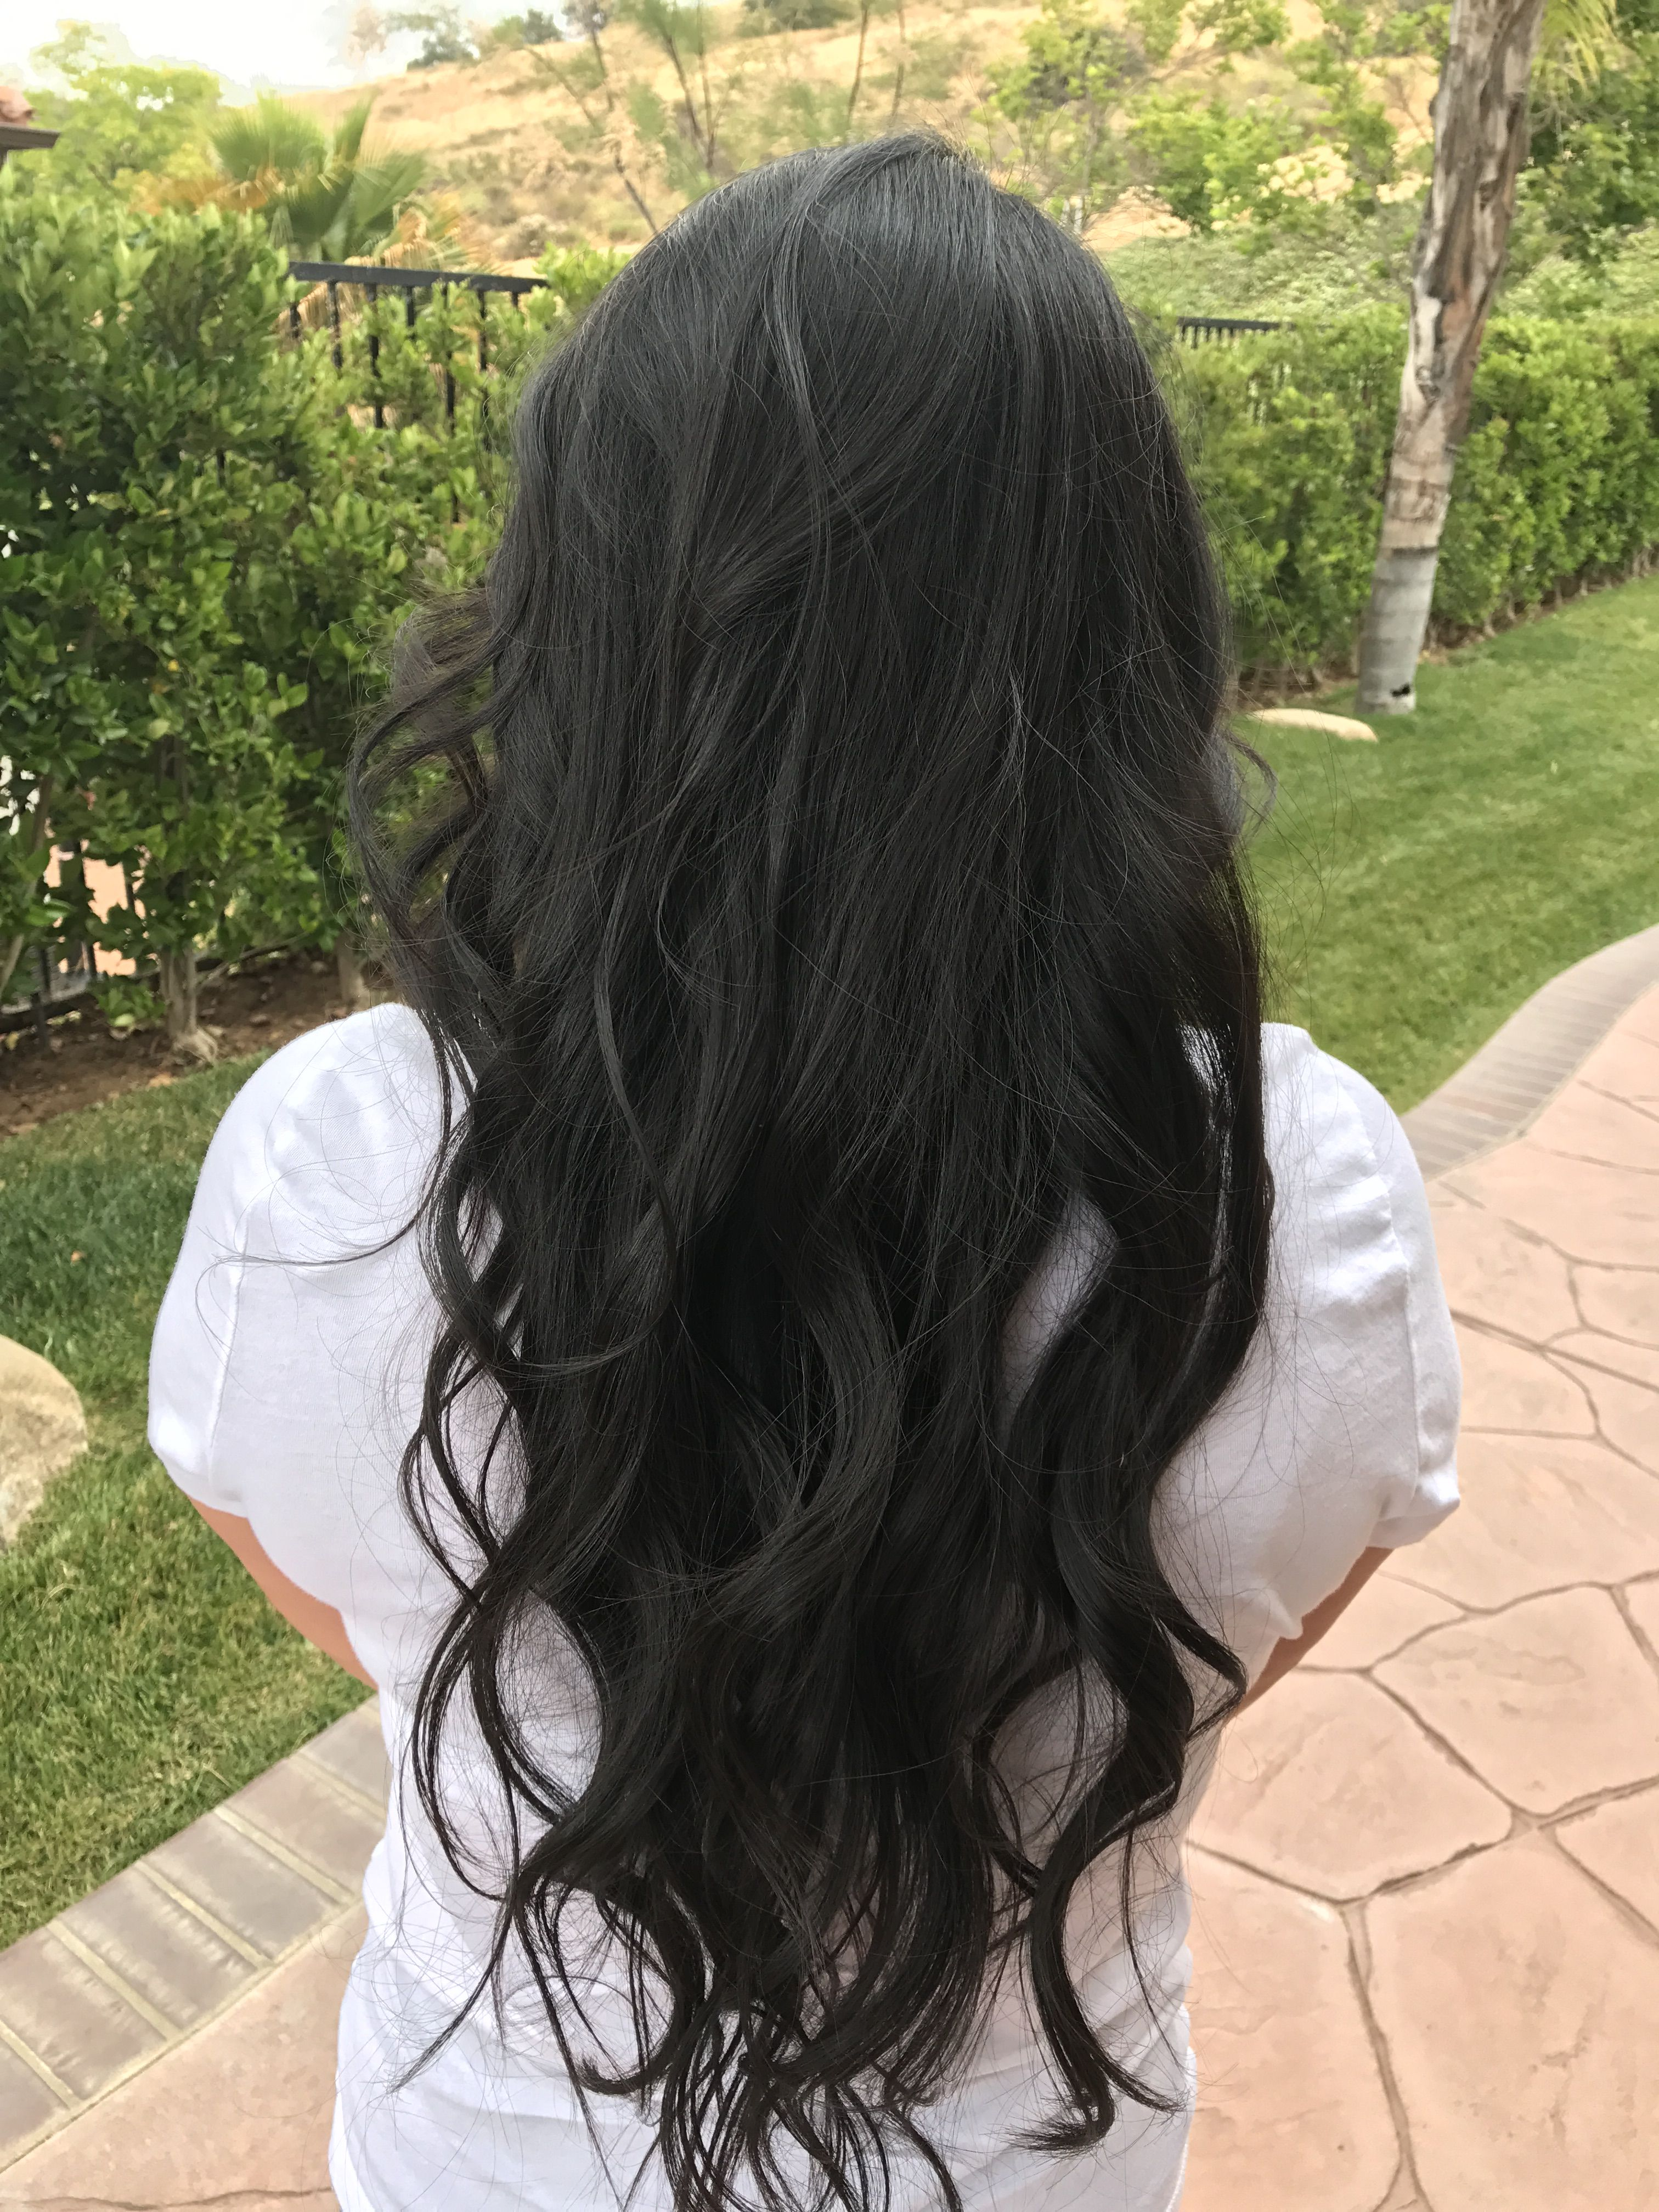 Long Dark Wavy Loose Curls Layered Long Layered Hair Loose